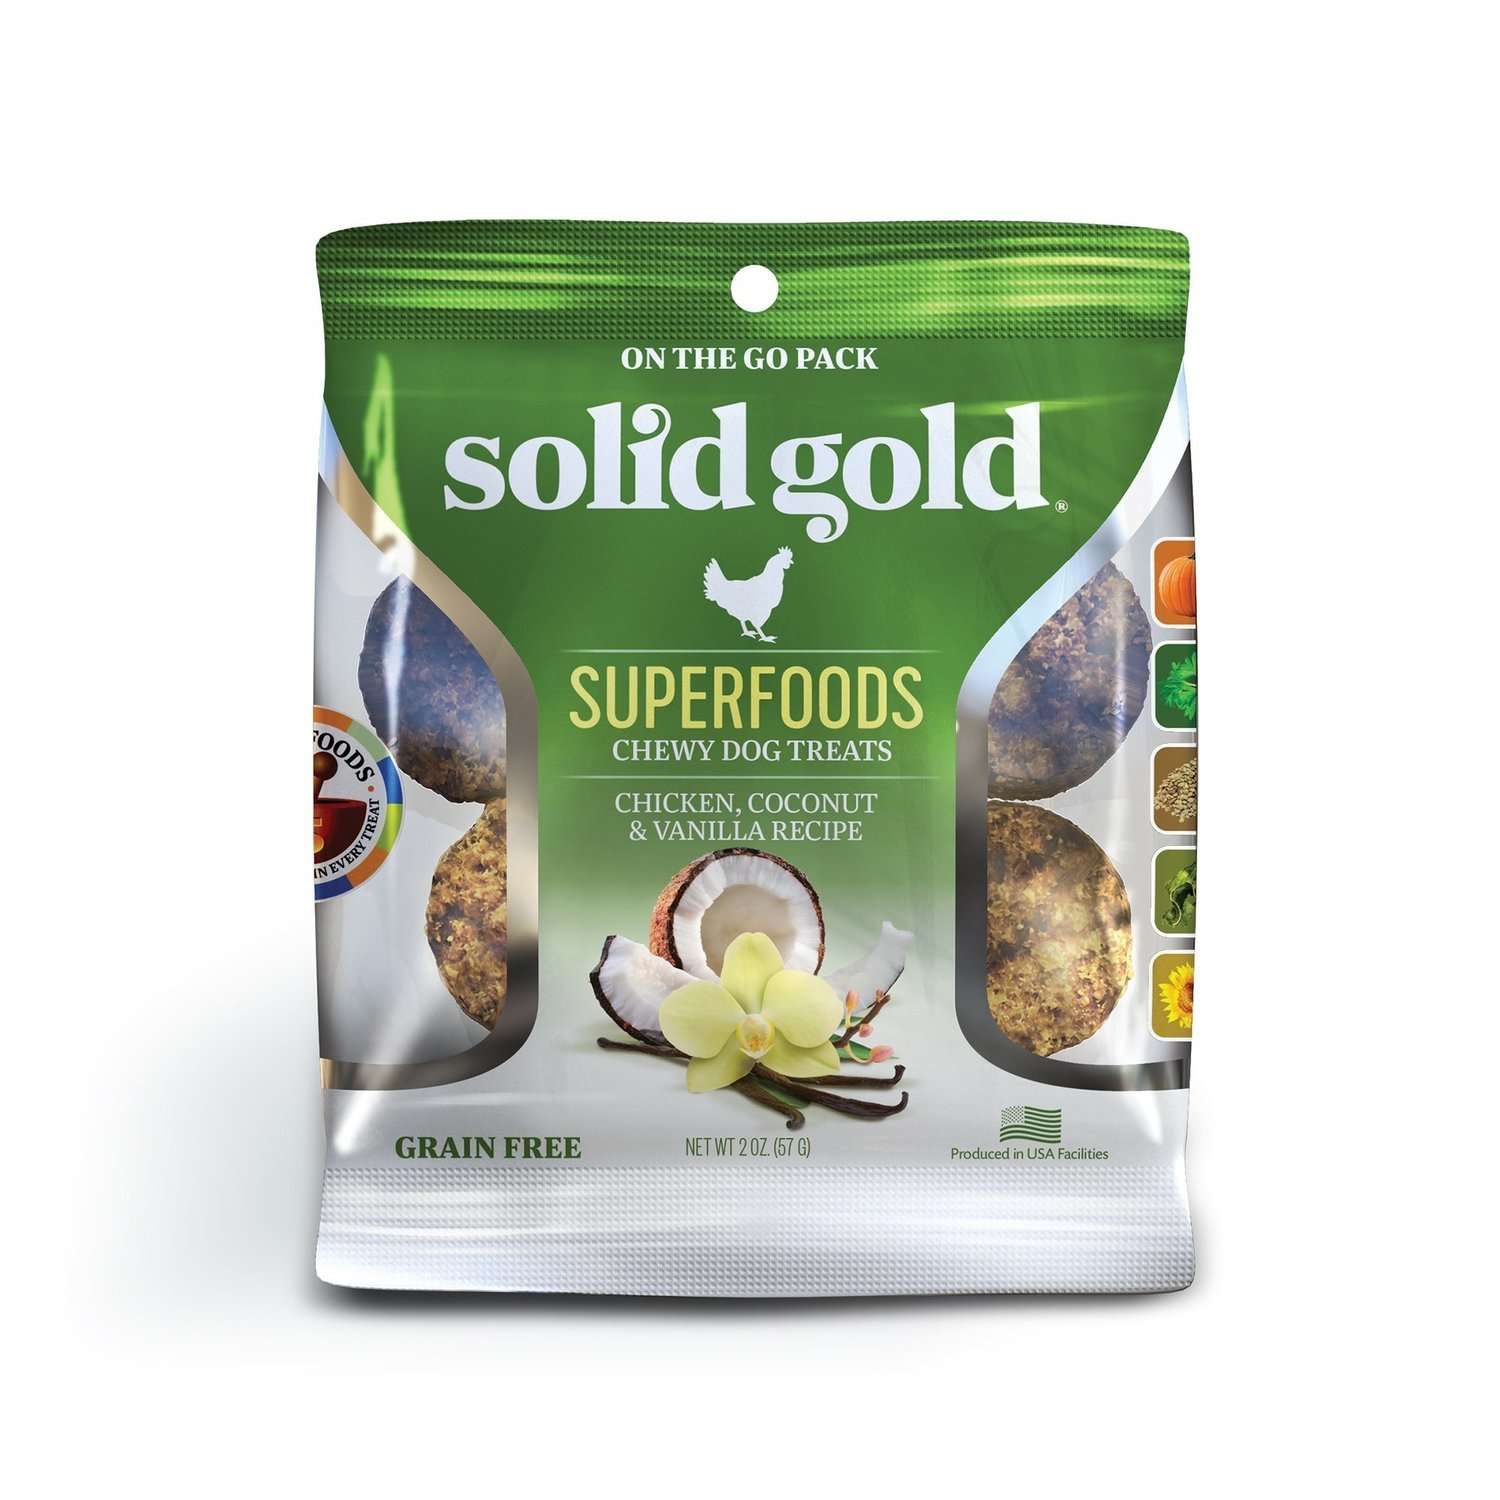 Solid Gold Grain Free Chicken, Coconut & Vanilla Natural Chewy Dog treats 2 oz.(2/19) (T.C14)